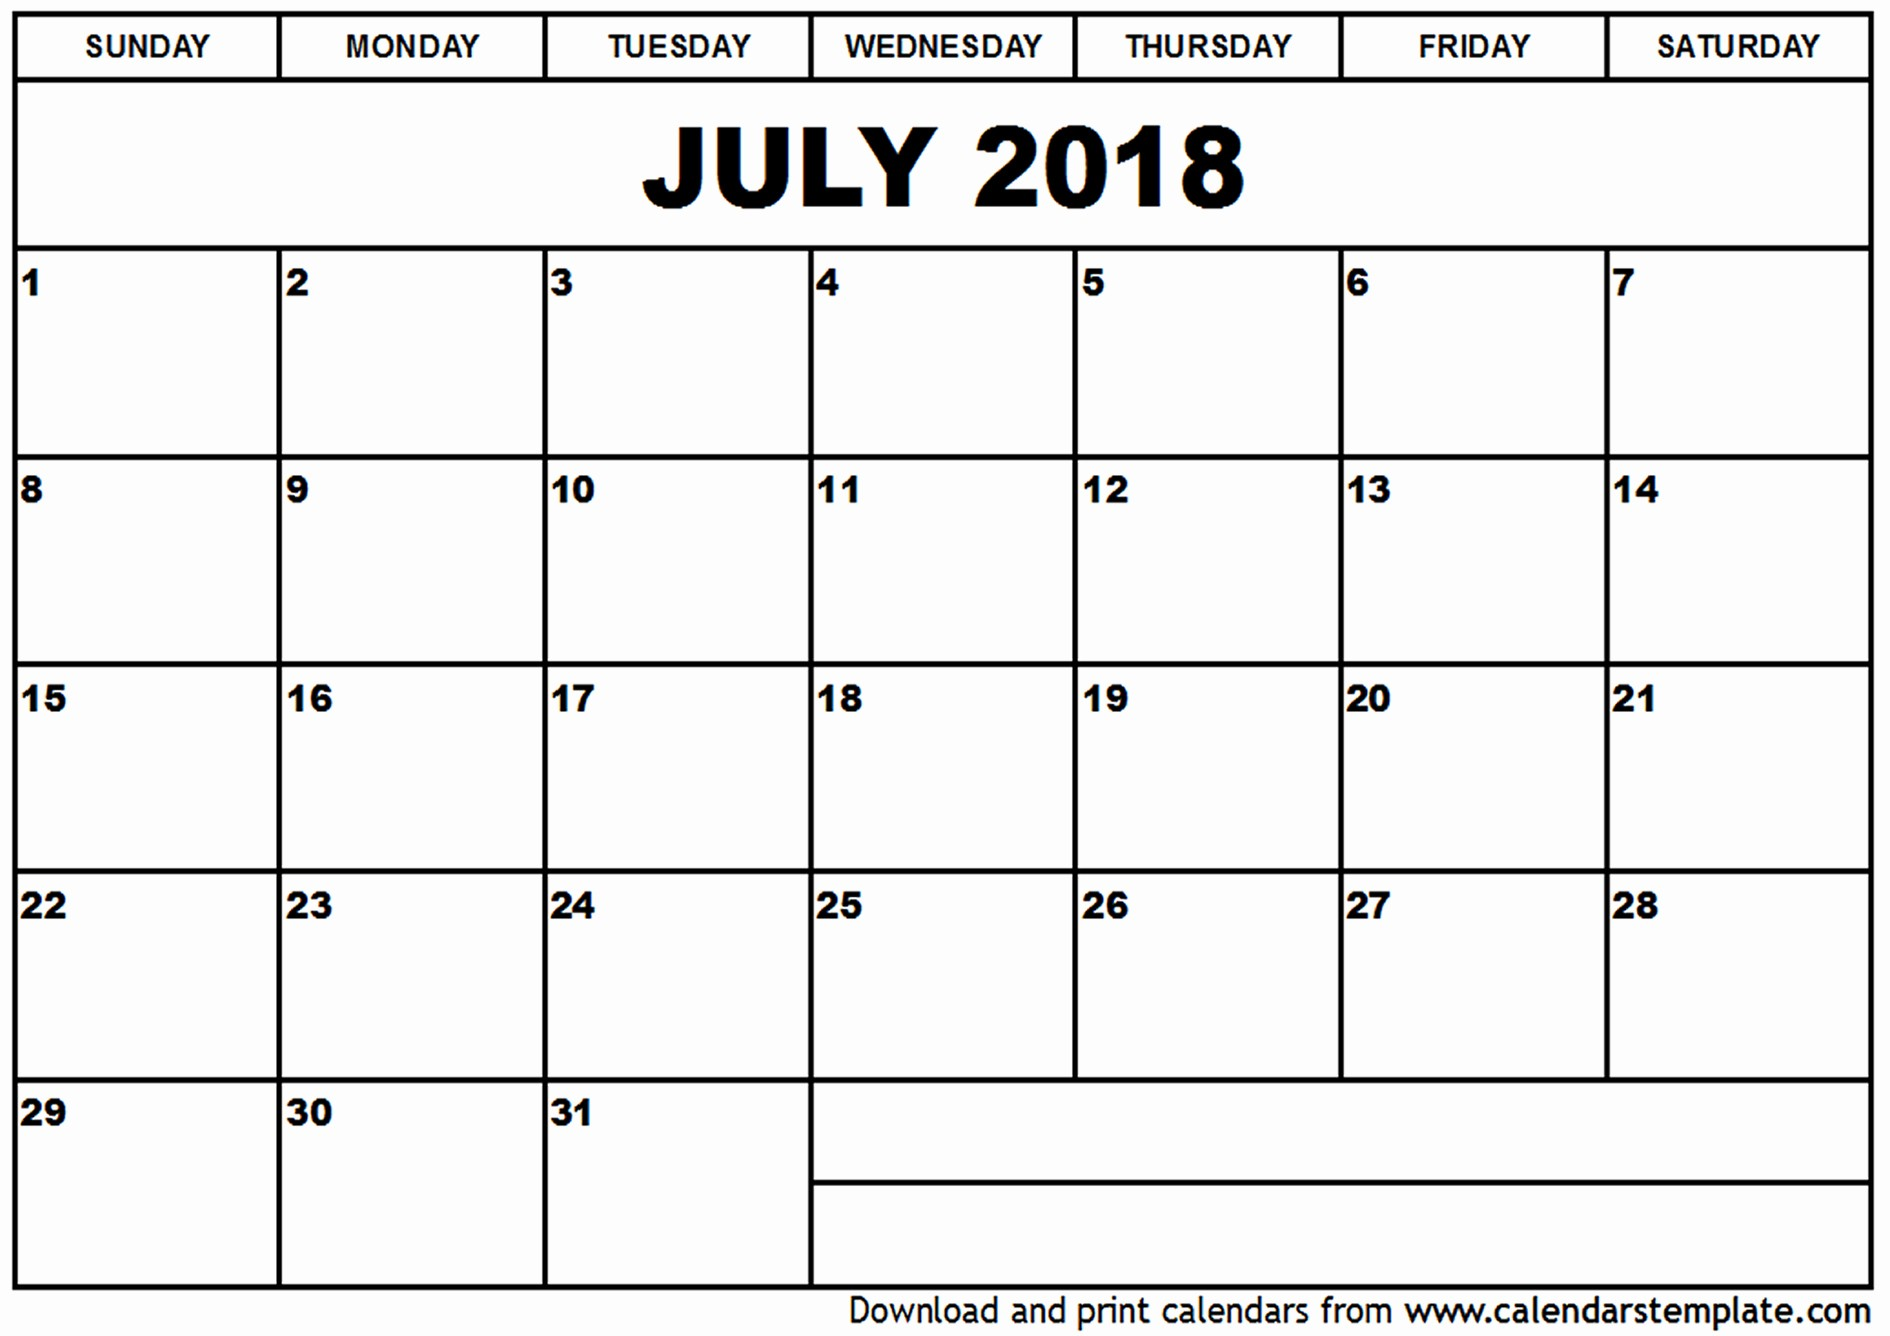 Free Printable 2018 Calendar Templates Awesome July 2018 Calendar Template